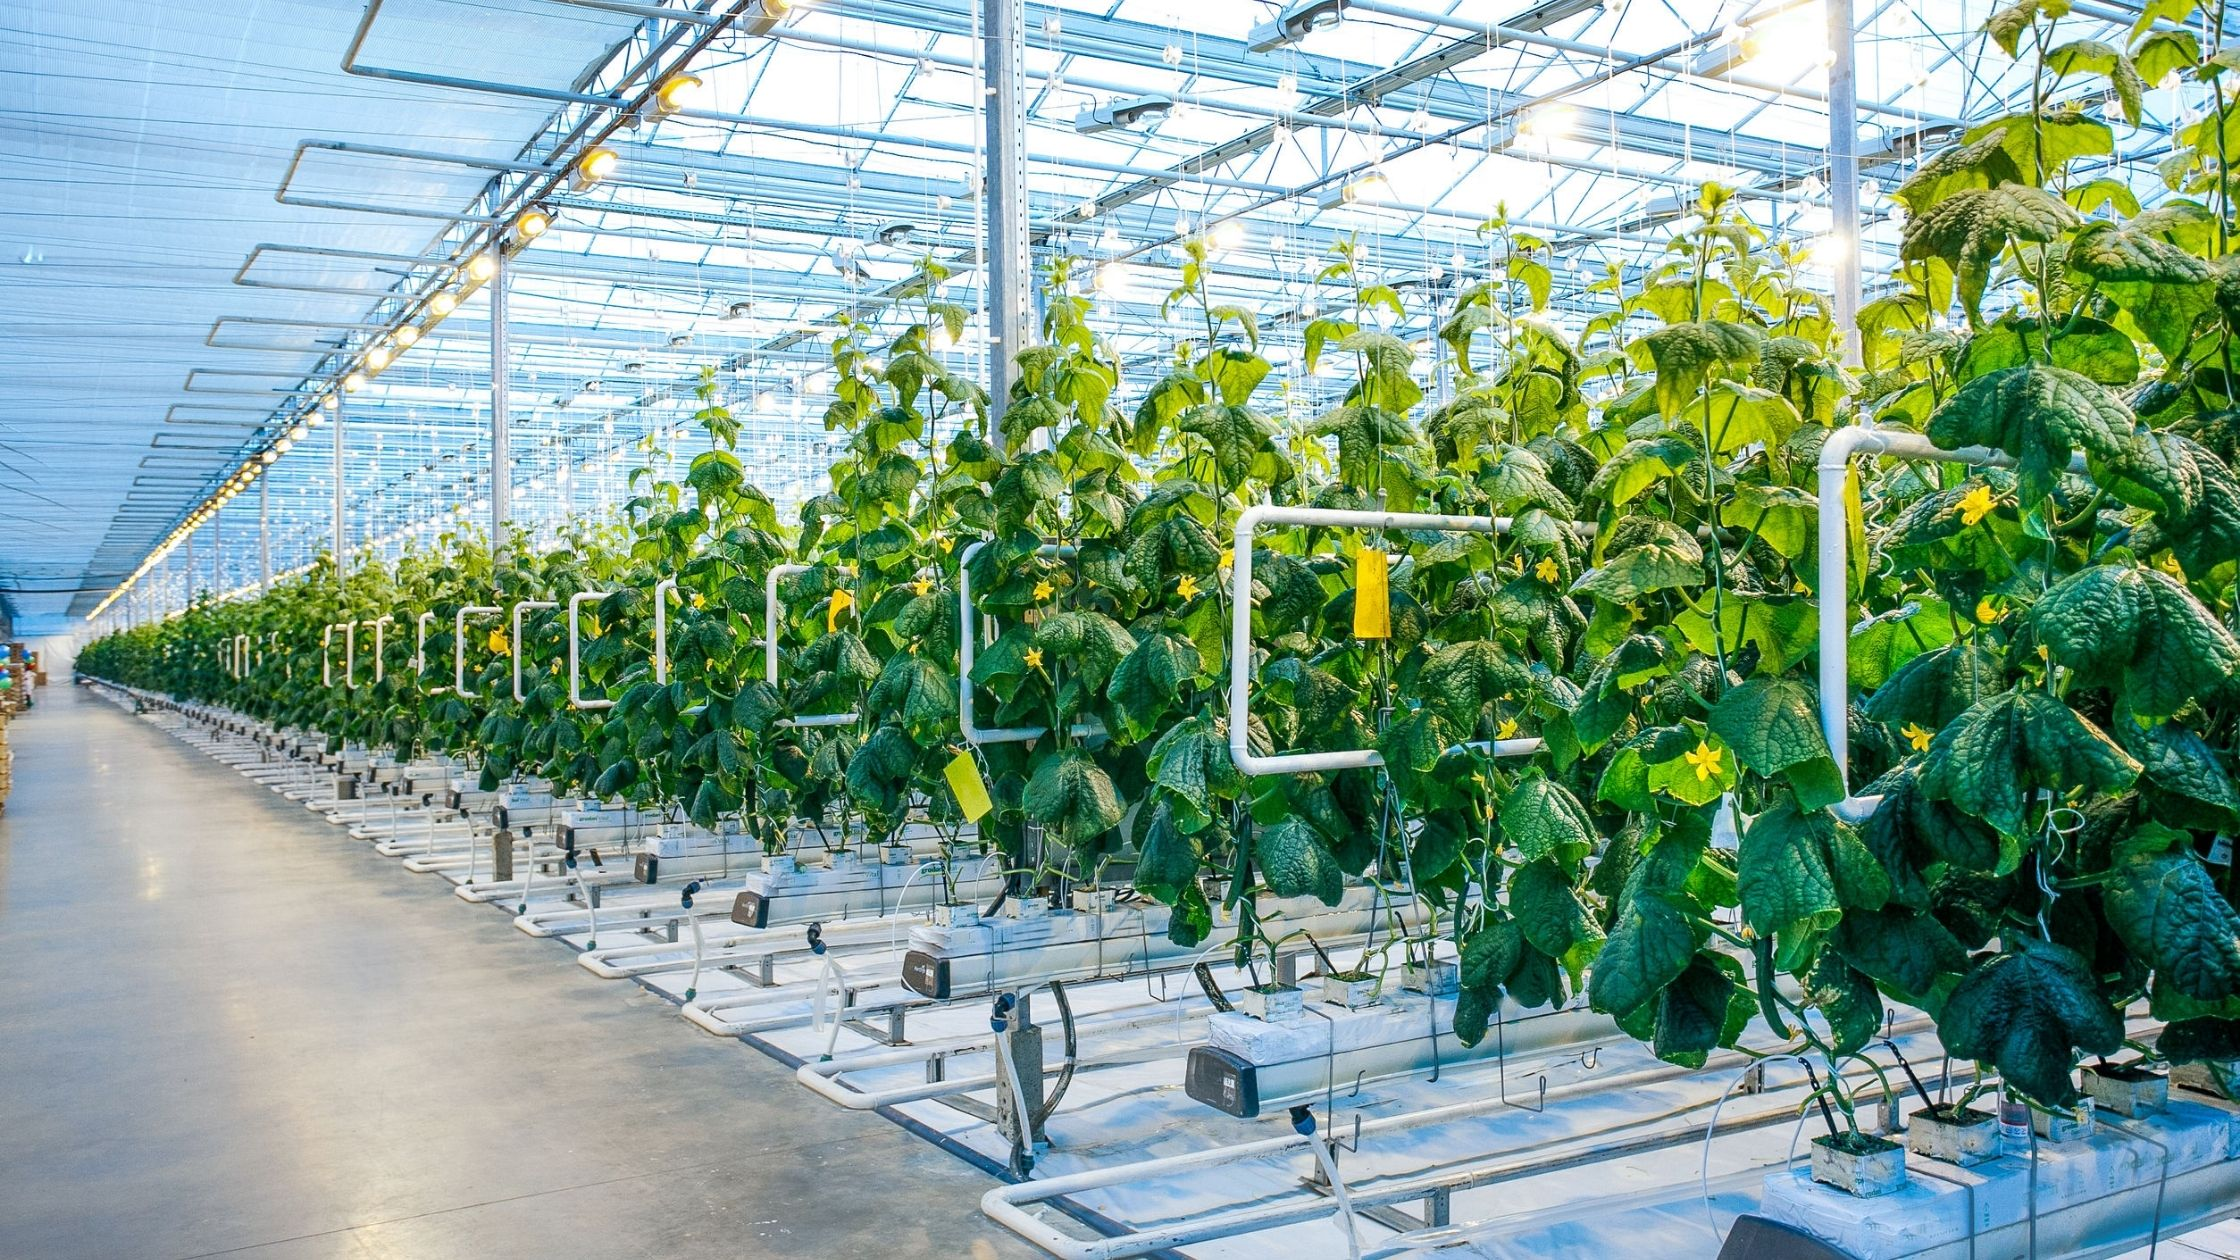 ITC LTD-STRUCTURE STERILE HYDROPONIC GREENHOUSE